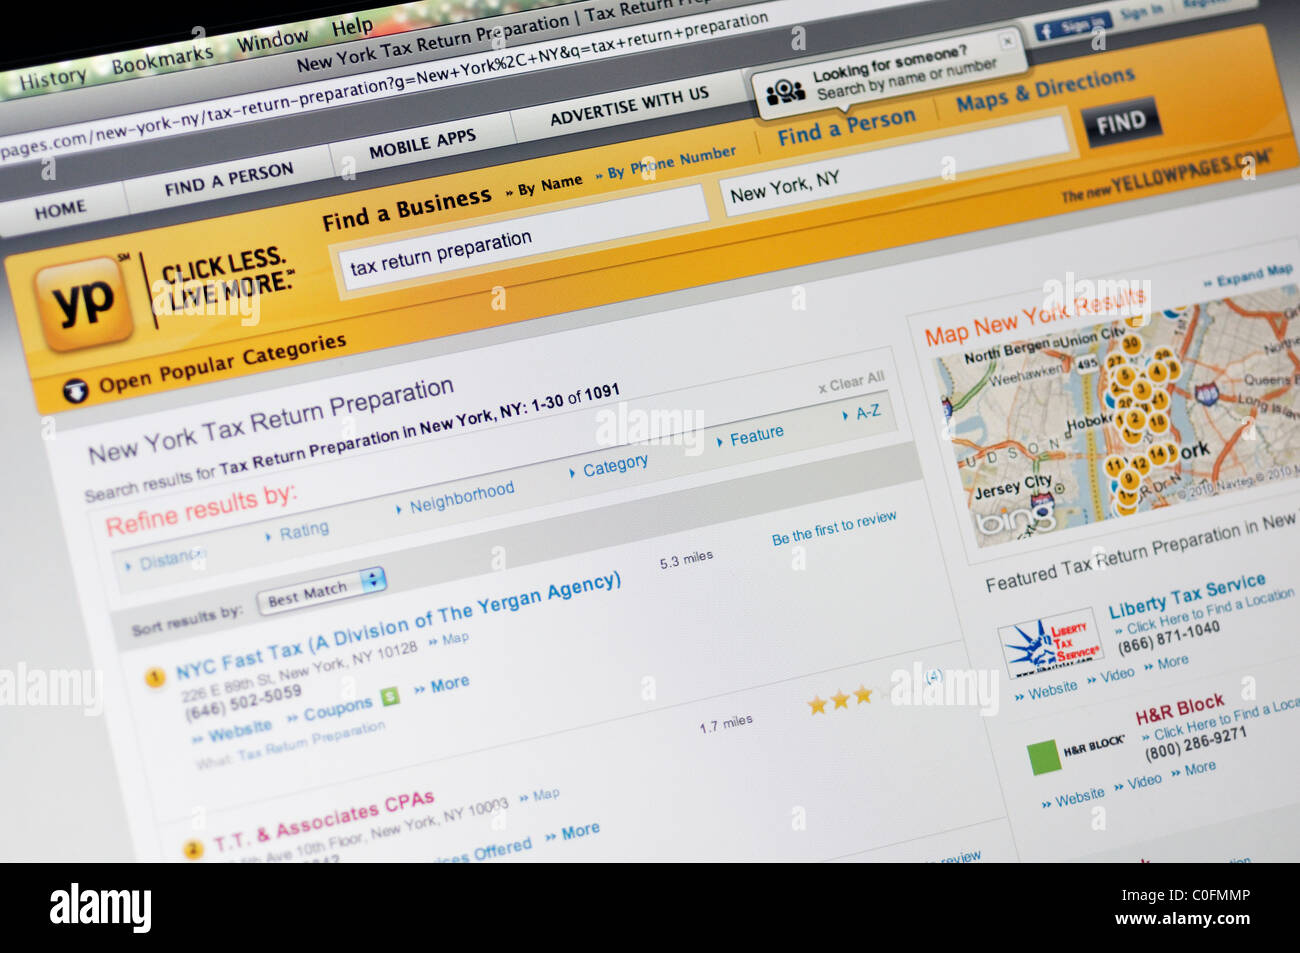 Yellow Pages phonebook website Stock Photo: 34766278 - Alamy on transportation maps, zip codes maps, home maps, google maps, weather maps, al maps, advertising maps, networking maps, social media maps, driving directions maps, maps maps, travel maps, education maps,